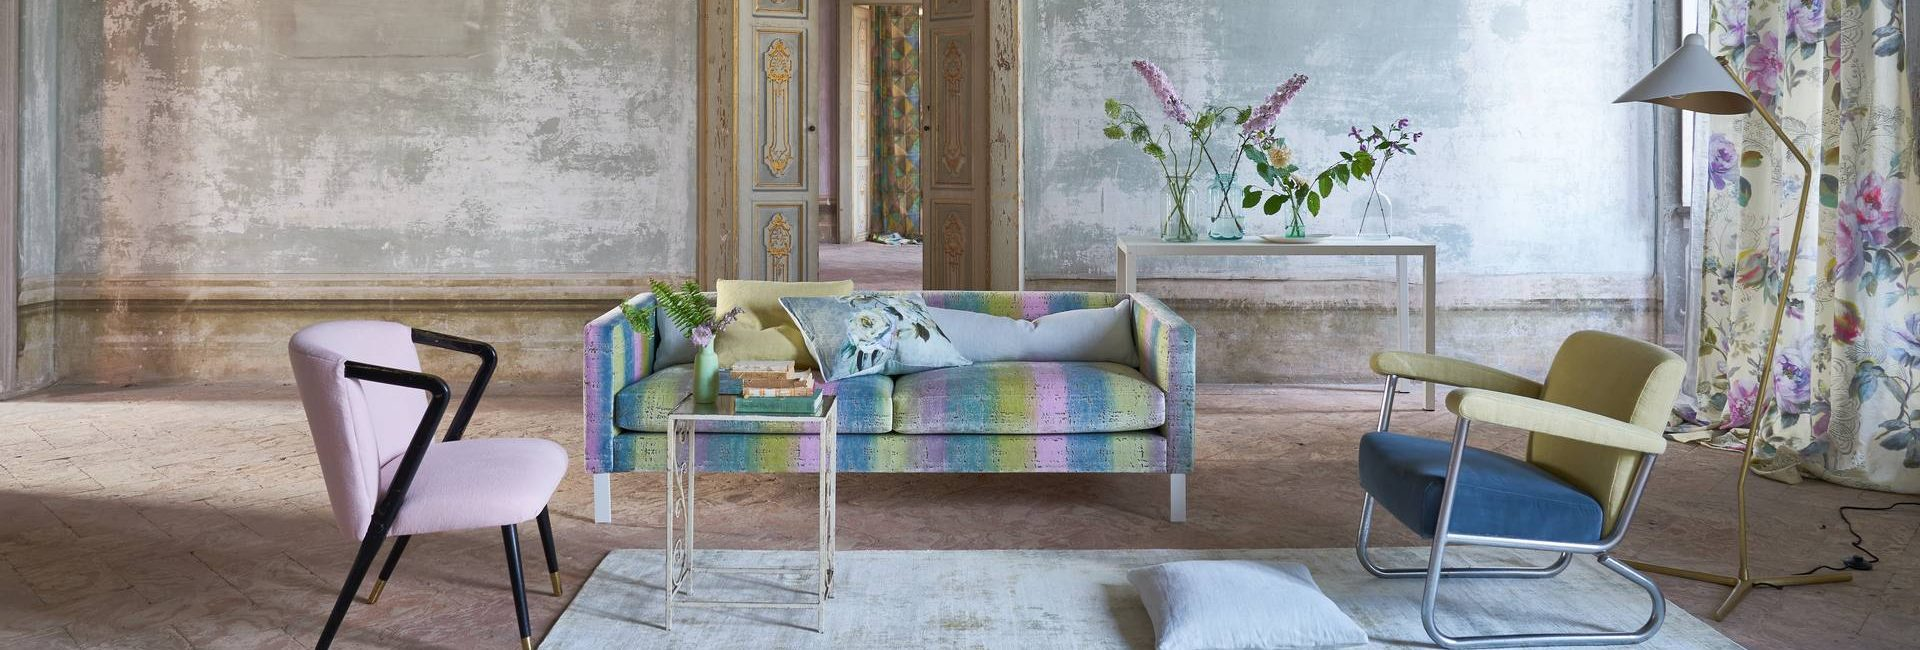 Designers Guild Chateau fabric collection; rugs, fabric, upholstery and curtains - available from Fabric Gallery and Interiors in Dunnington, York